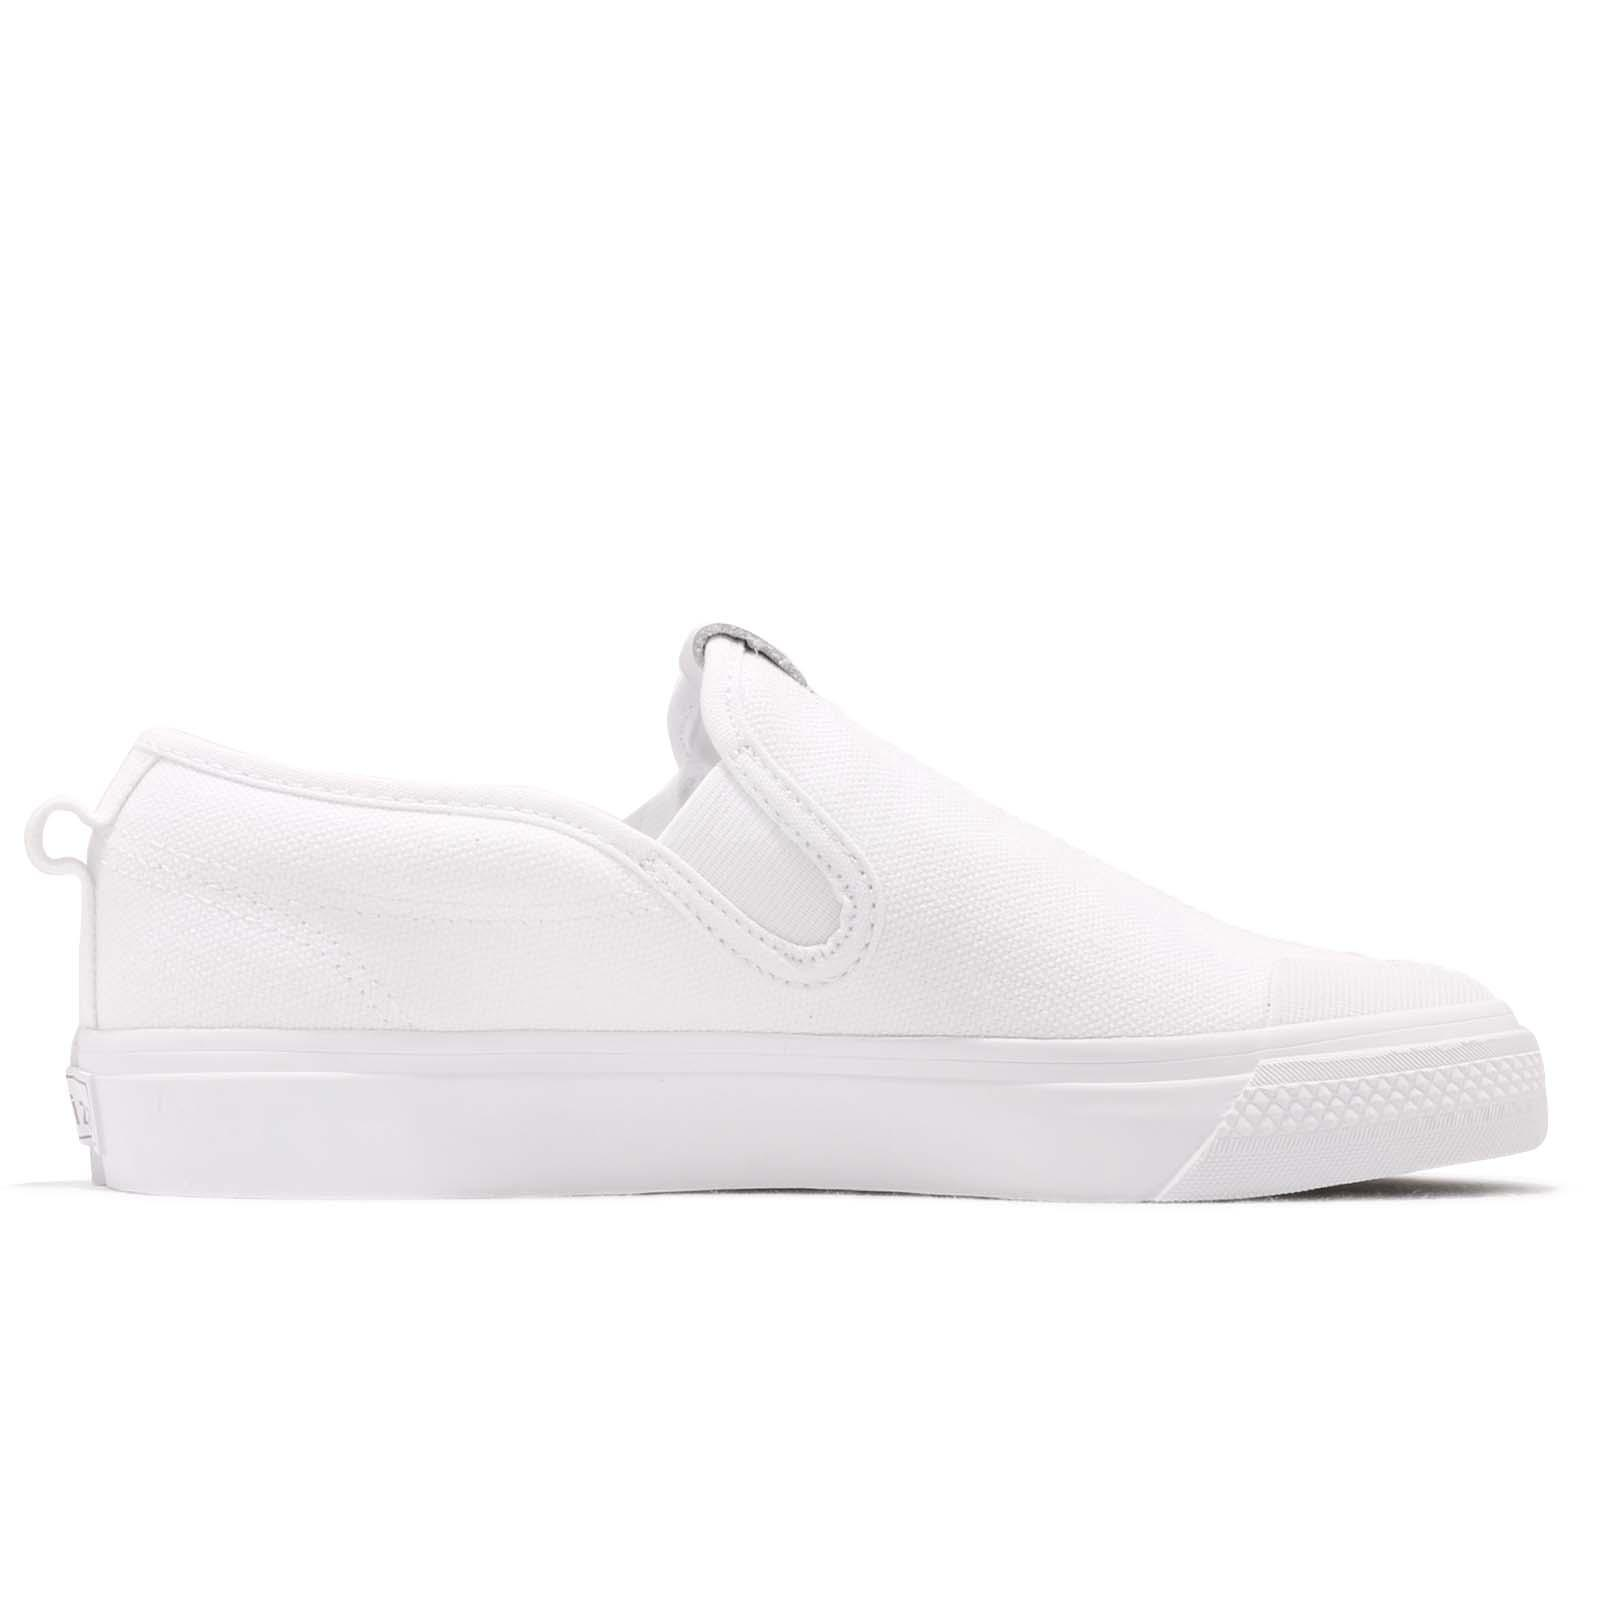 adidas Originals Nizza Slipon W White Women Slip On Casual Shoes ... 4850a72ad0fd2